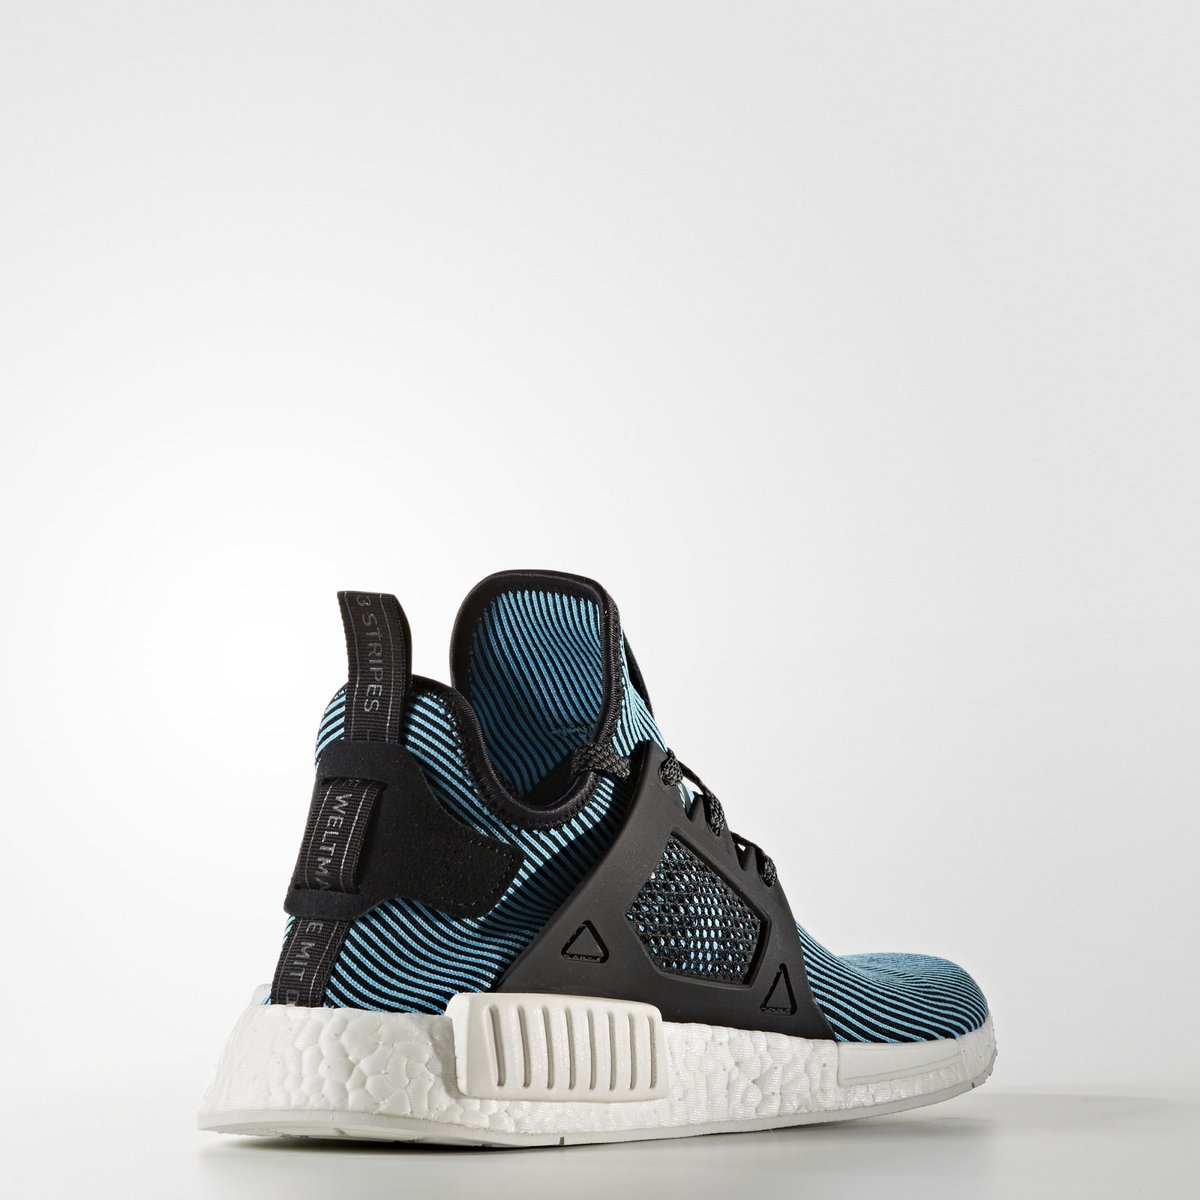 Adidas NMD XR1 Primeknit Black Blue On feet Video